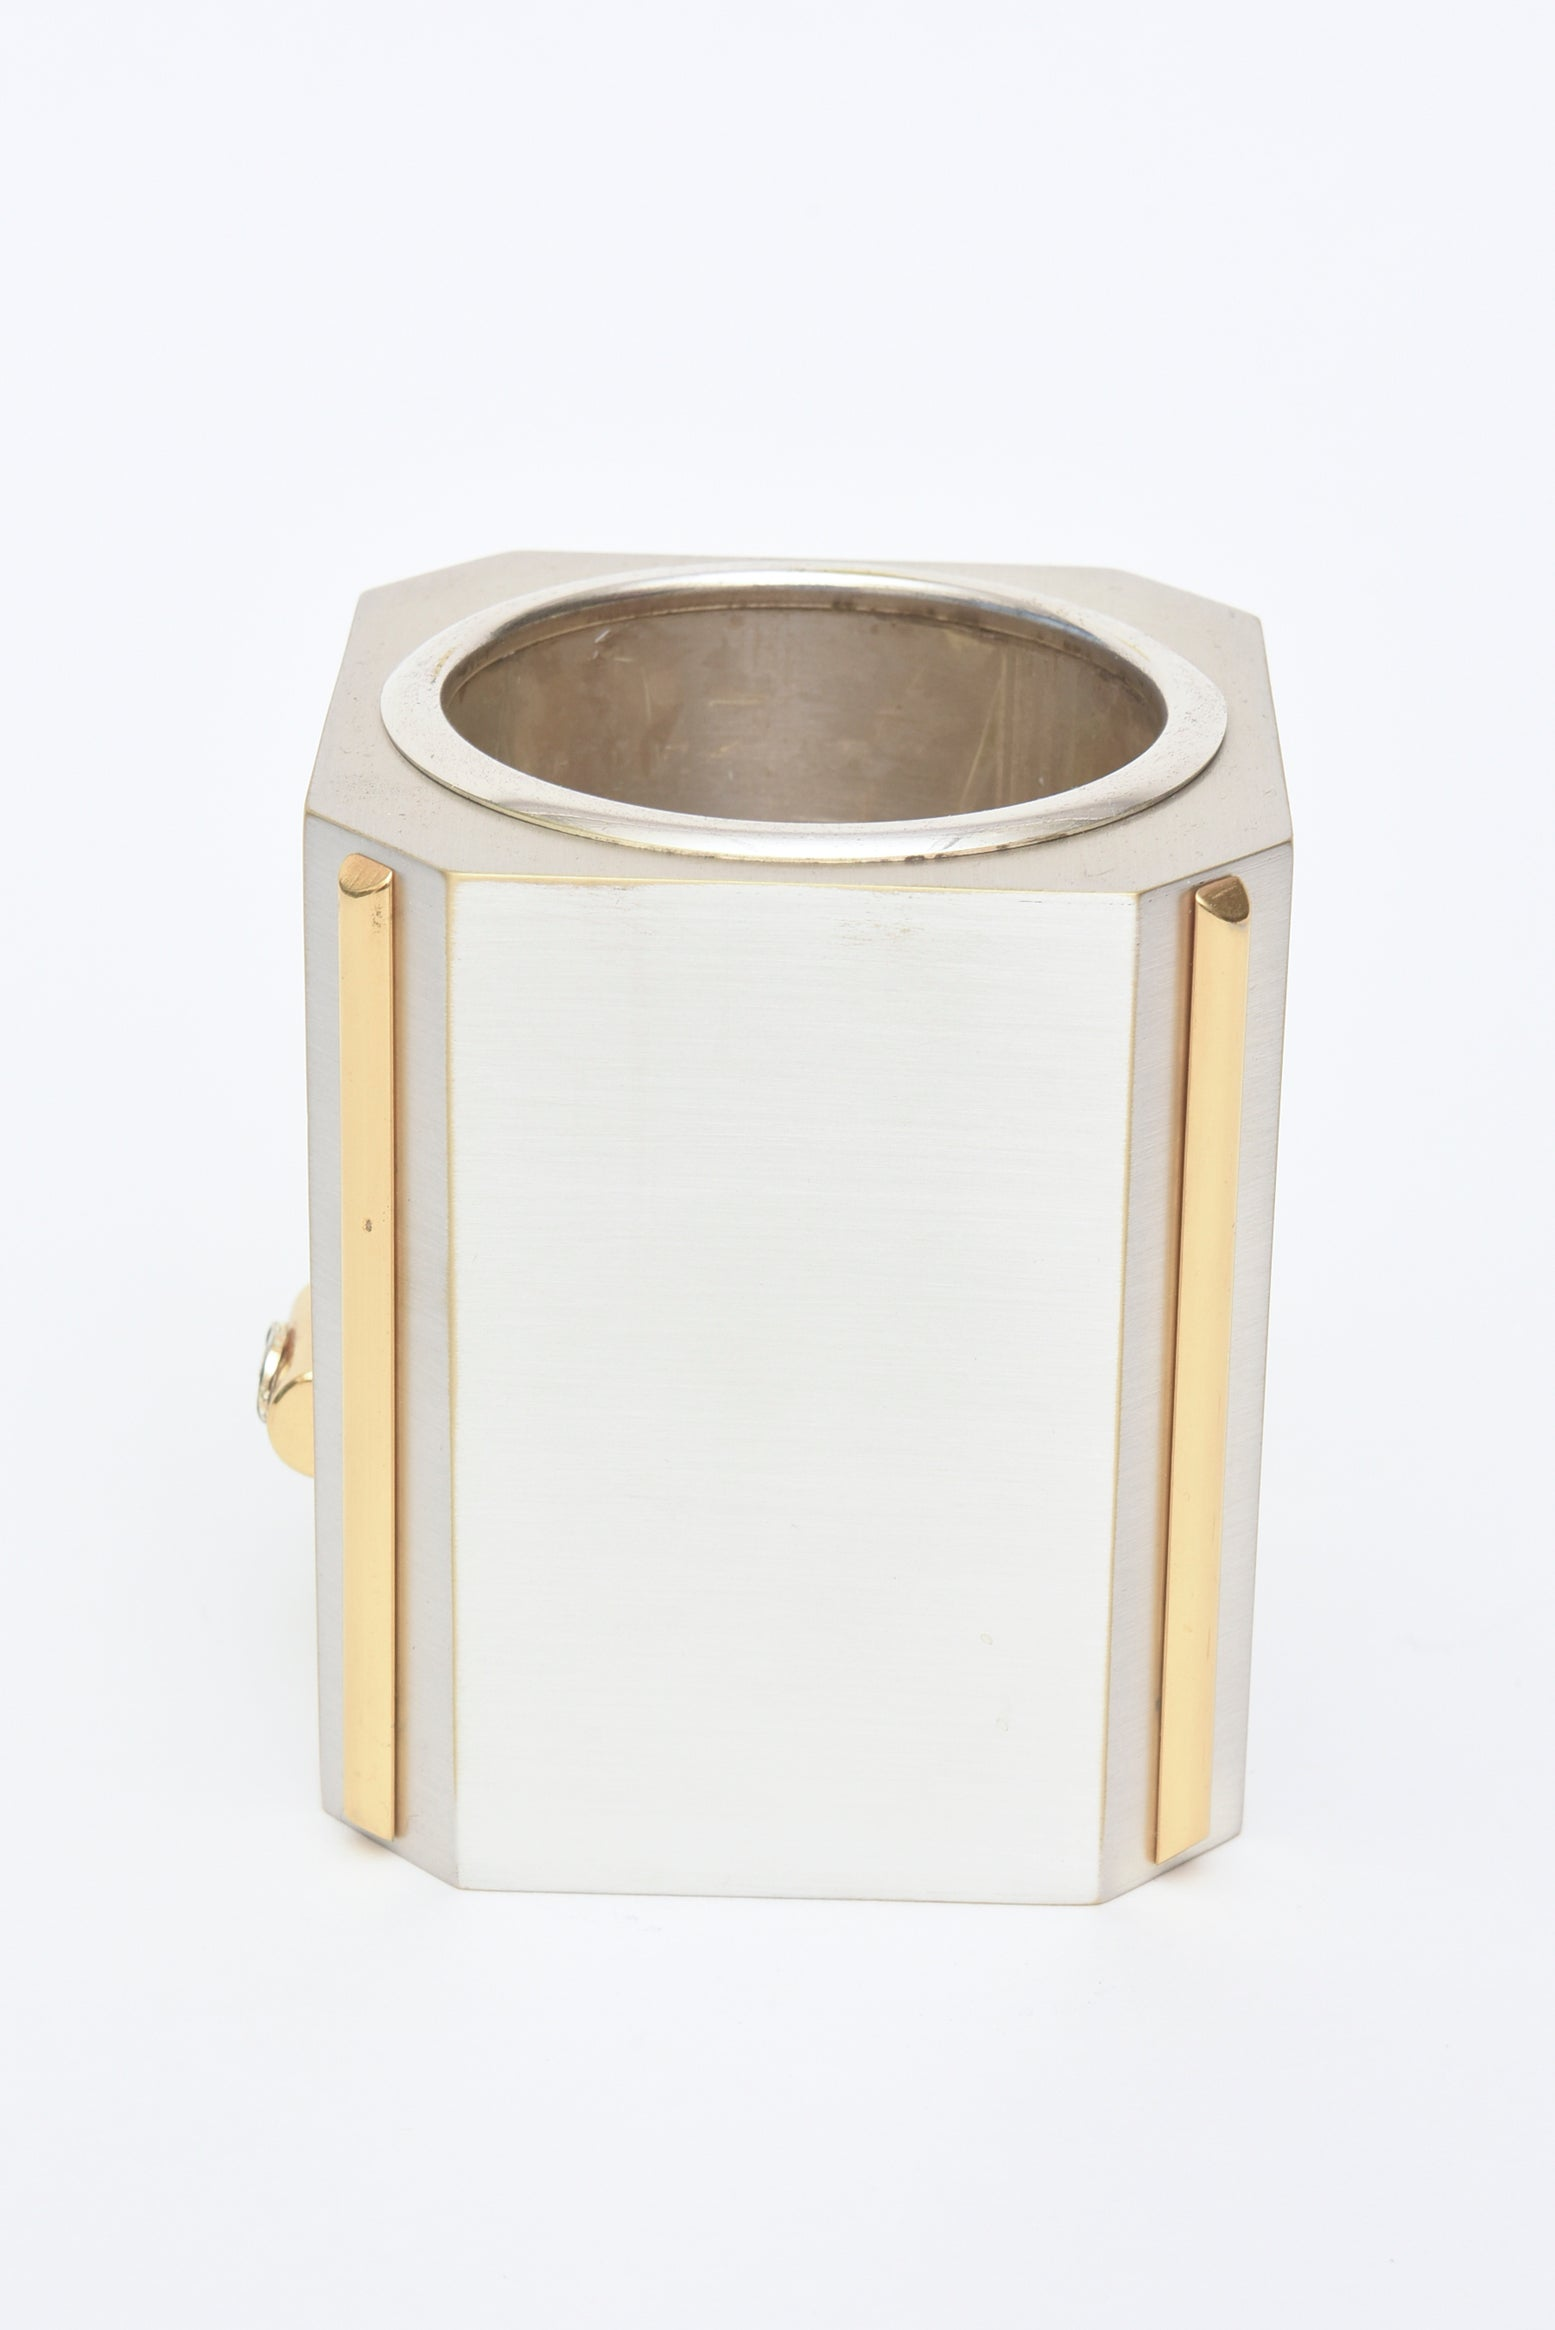 Italian Gucci Brushed Silver Plate And 24 Carat Gold Plated